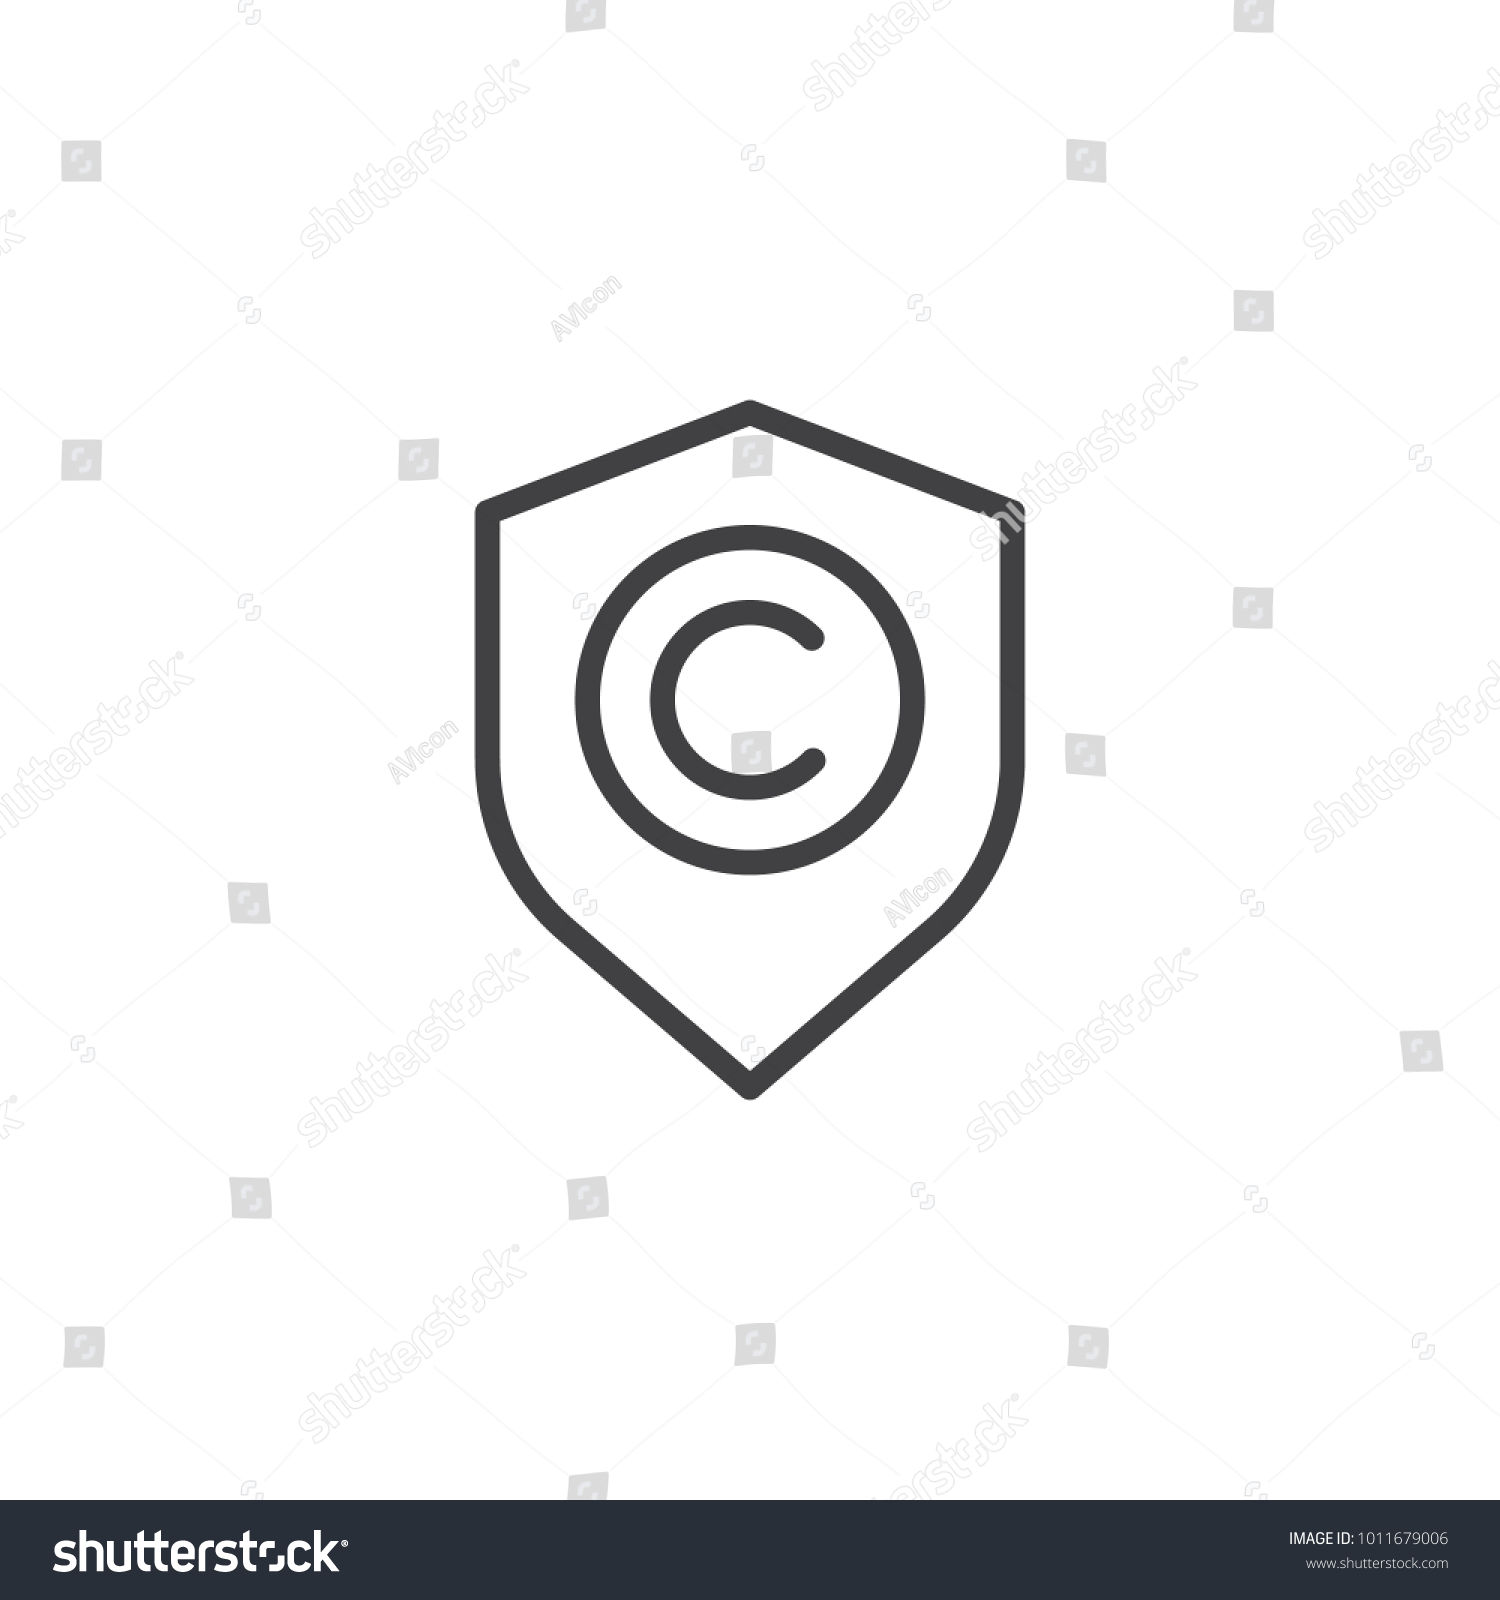 Shield Copyright Sign Line Icon Outline Stock Vector Royalty Free